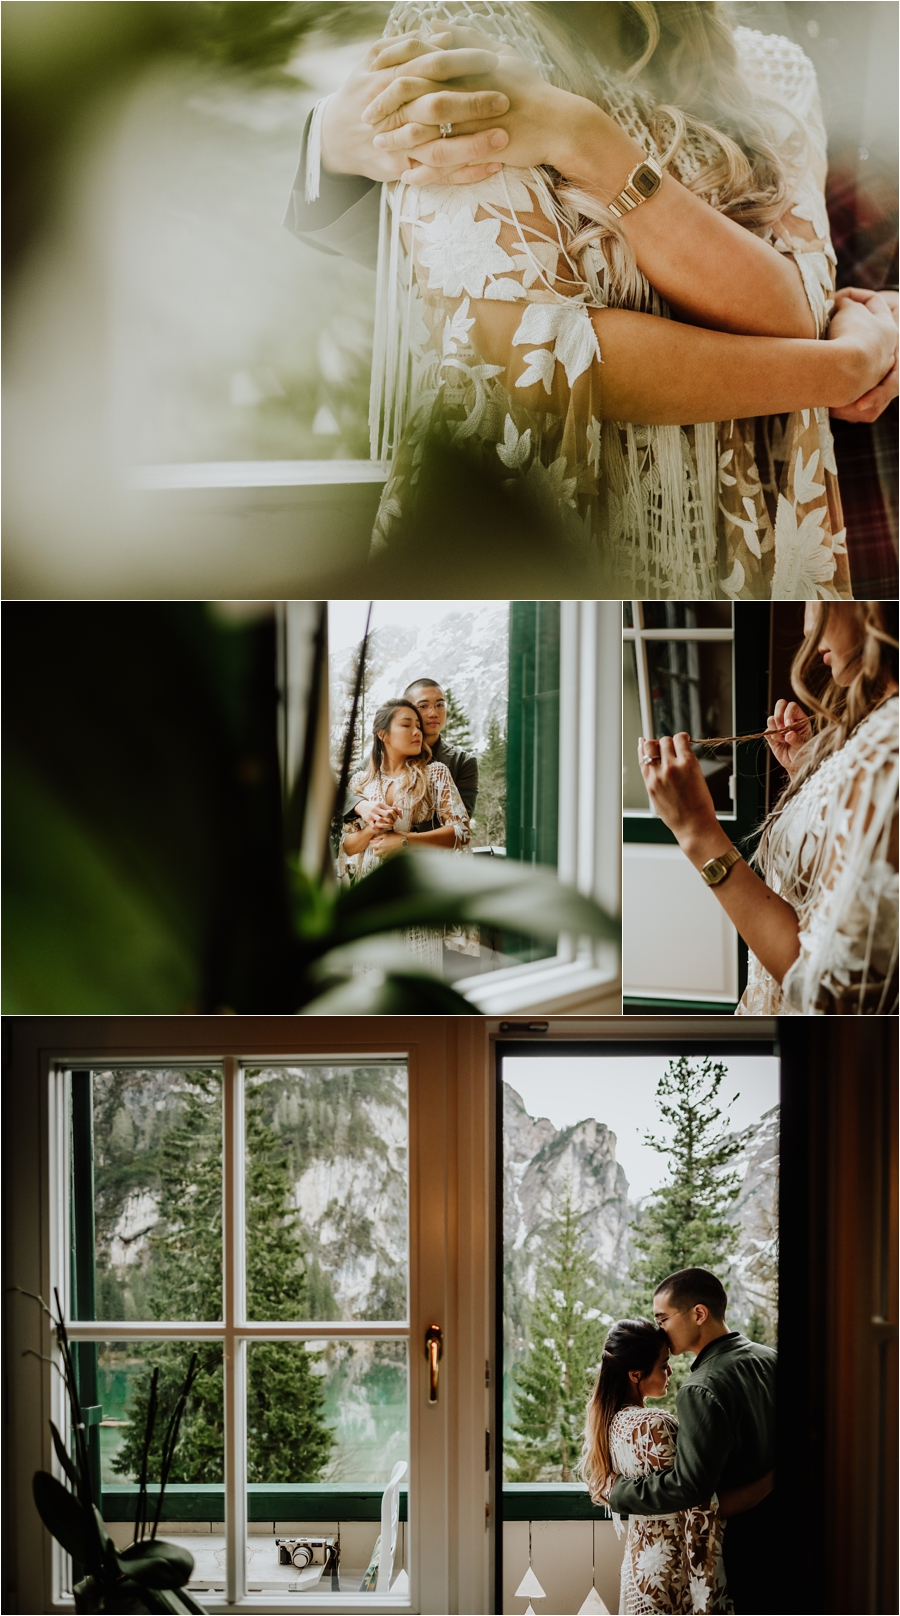 Hotel Pragser Wildsee Dolomites Pre_Wedding Engagement shoot by Wild Connections Photography